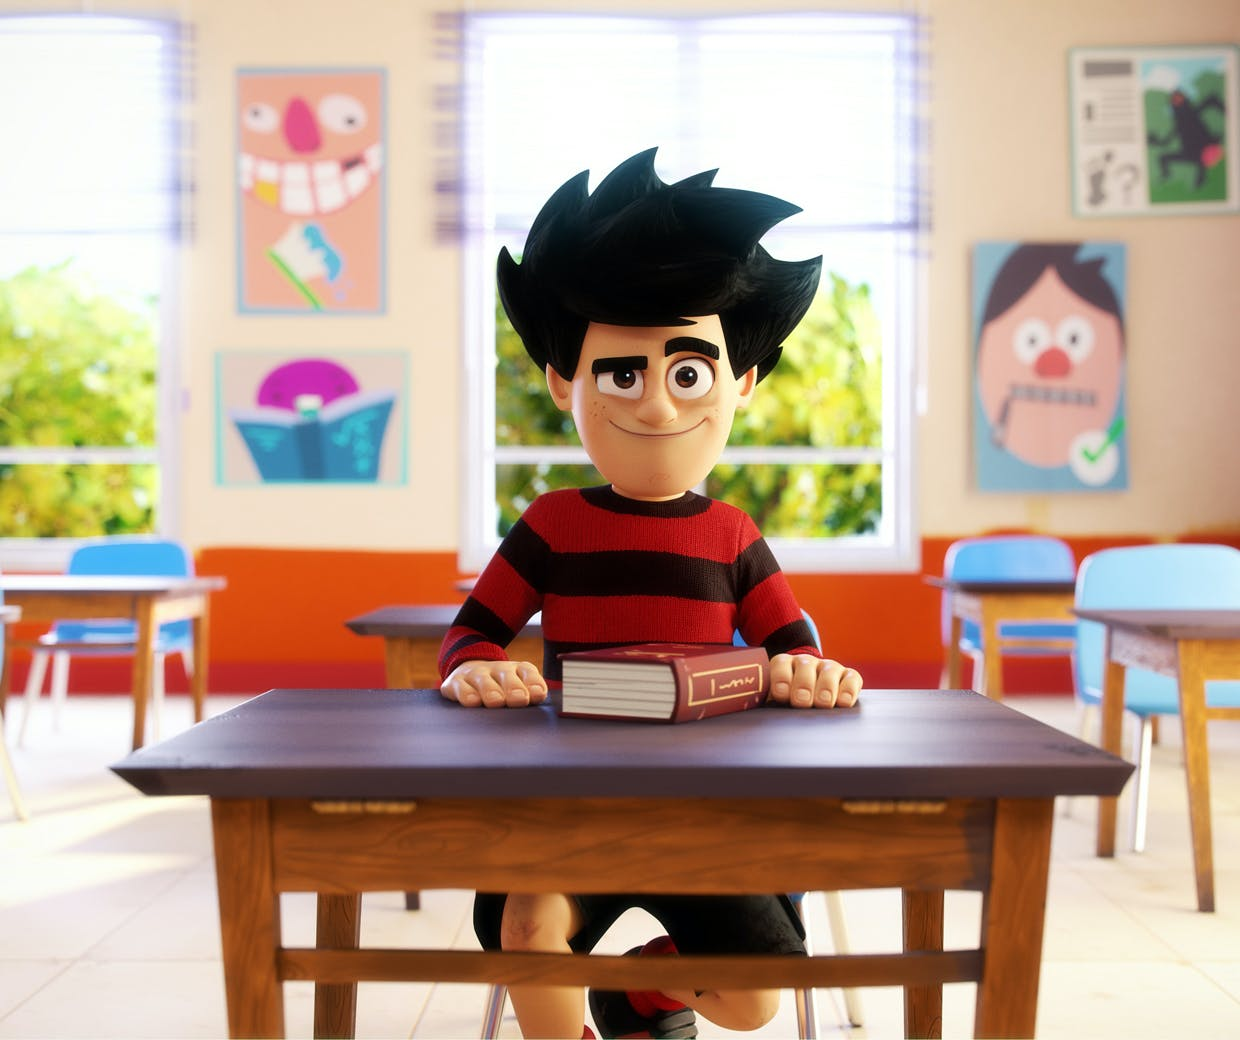 'People don't like being pigeon-holed': How Beano Studios targets kids and their parents